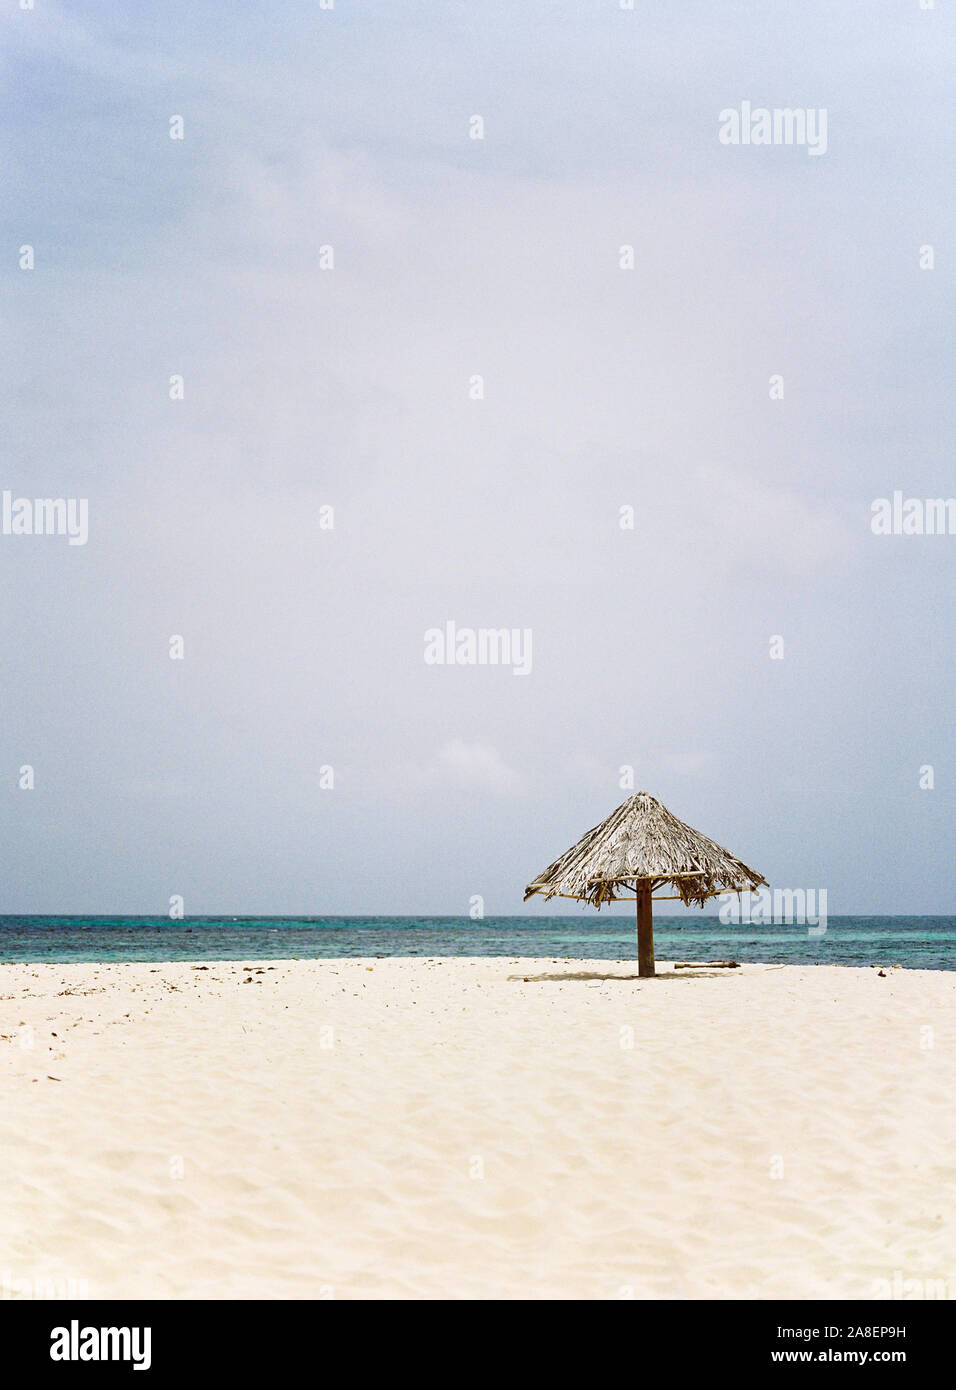 A palm frond umbrella resting on the isolated island beach of Mopion in St. Vincent and the Grenadines. Stock Photo